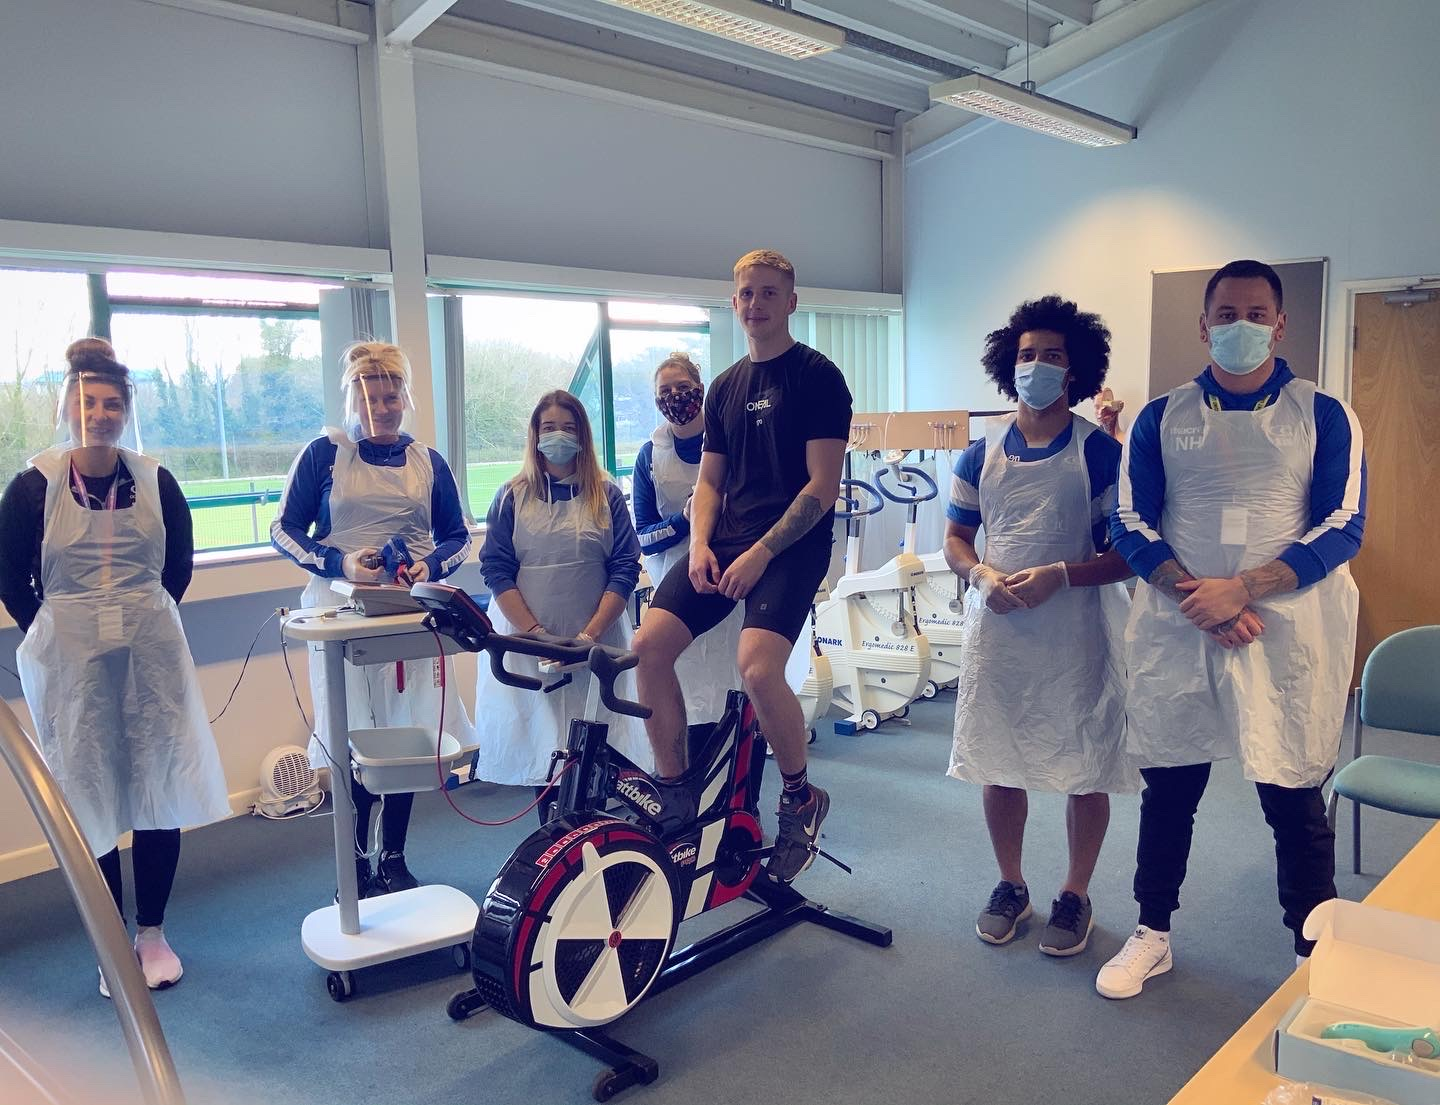 Elite mountain biker saddles up for students' lab tests